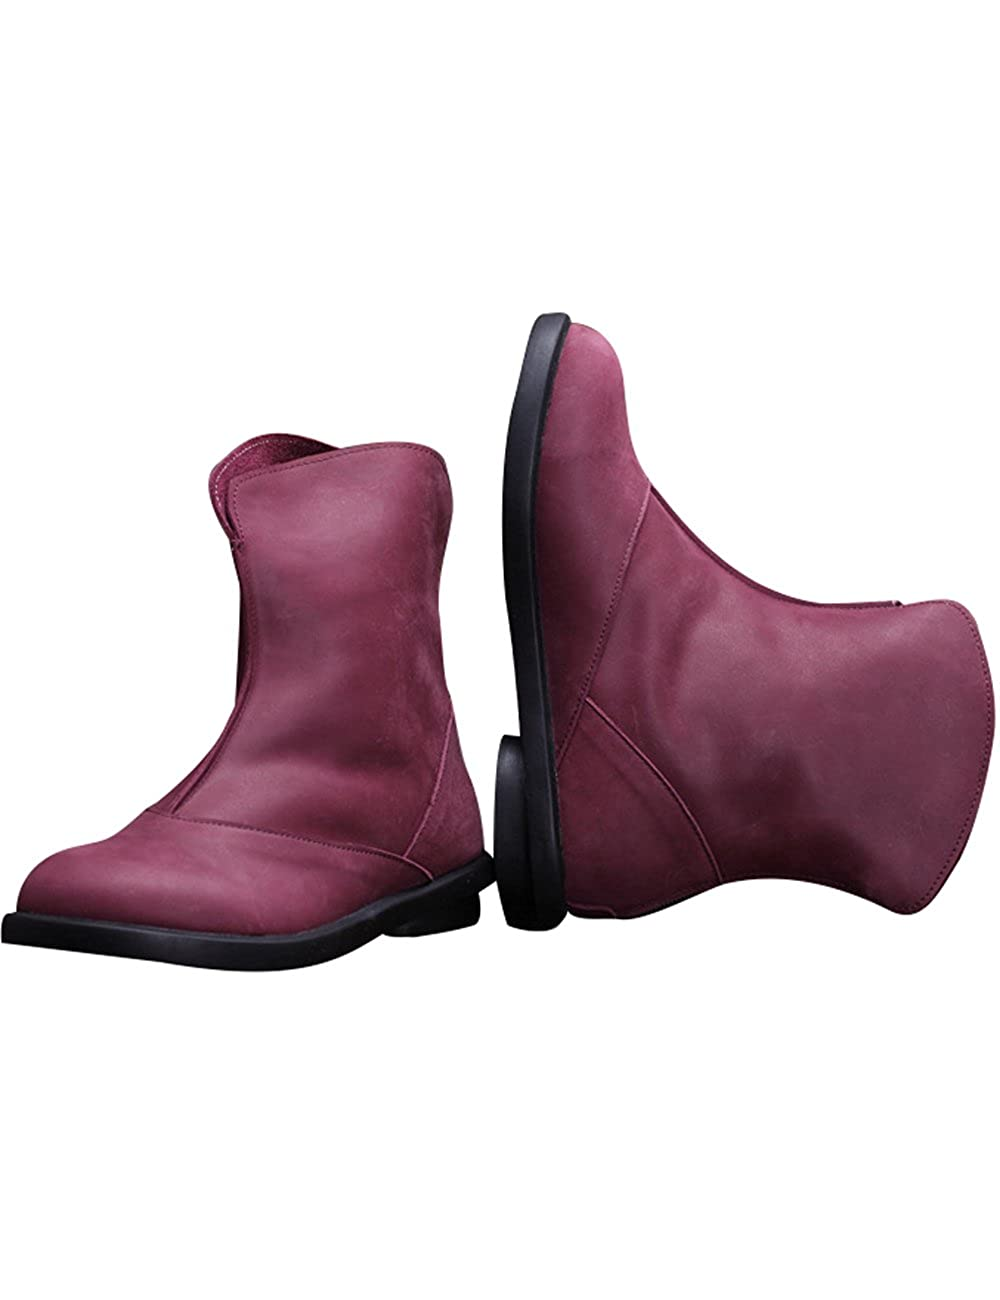 Zoulee Womens Autumn Winter Leather Flat Short Boots Warm Boots